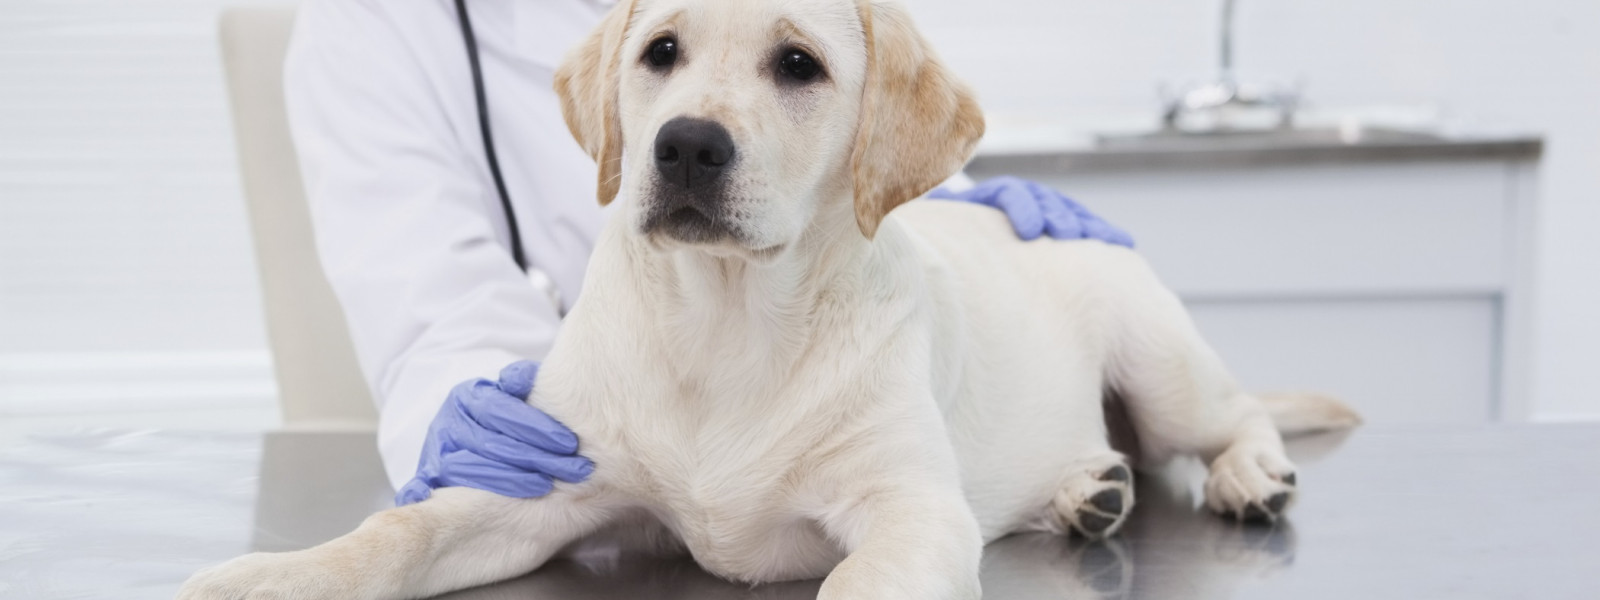 Animal Health Market 2021-2026: Industry Share, Size, Growth, Upcoming Trends, Key Players Analysis, Outlook and Global Research Report